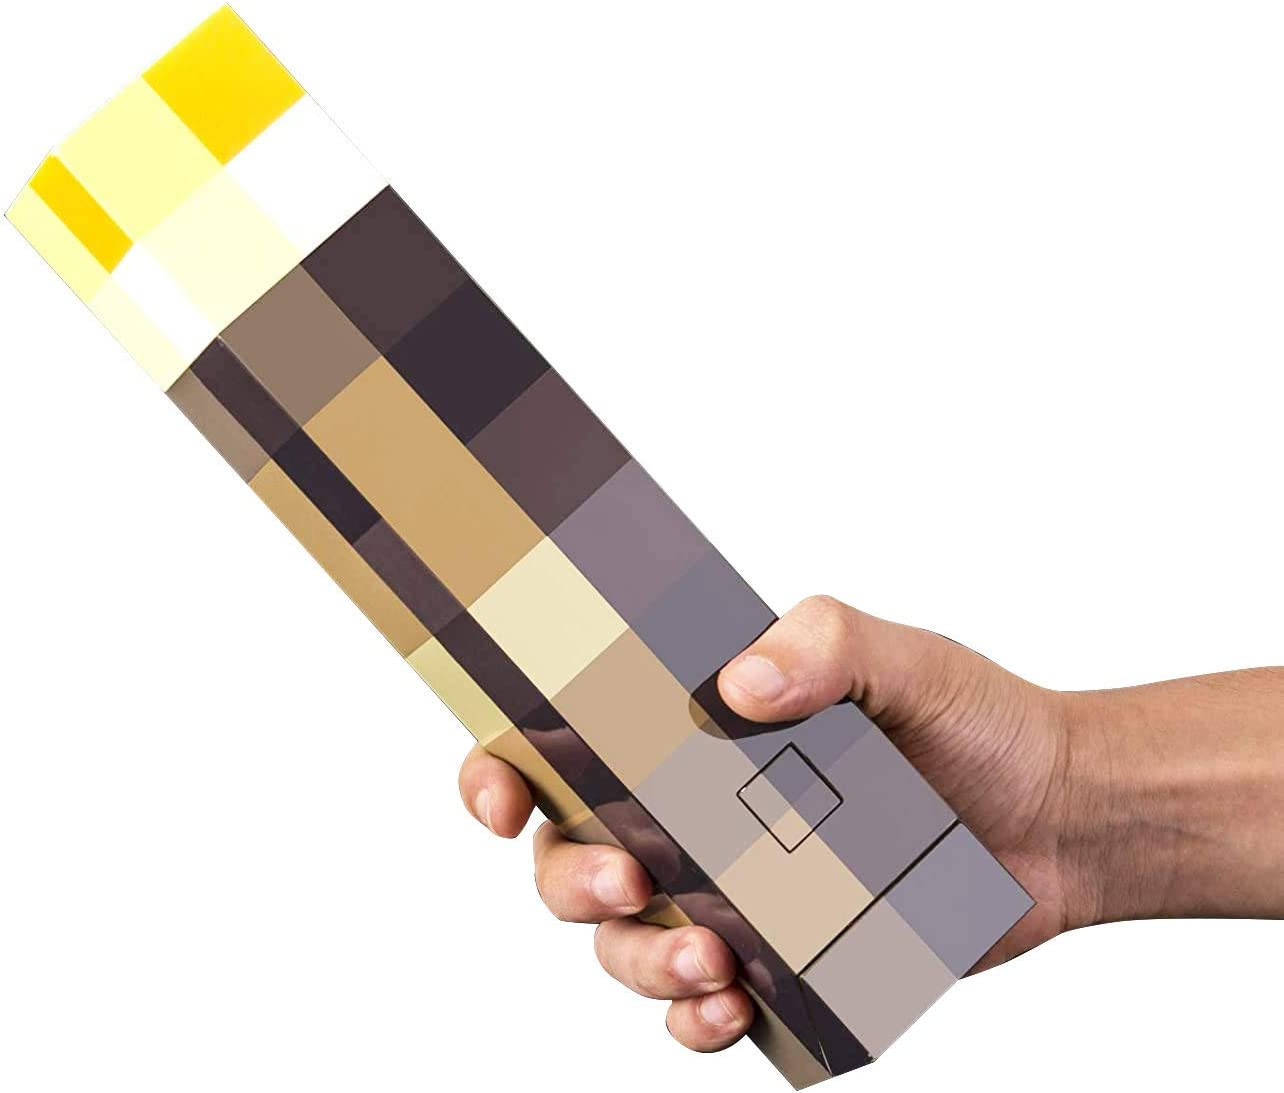 Oakland Mall MOOK Brownstone Pixels Light-up Wall Torch 25% OFF MCERS- for Mounts to